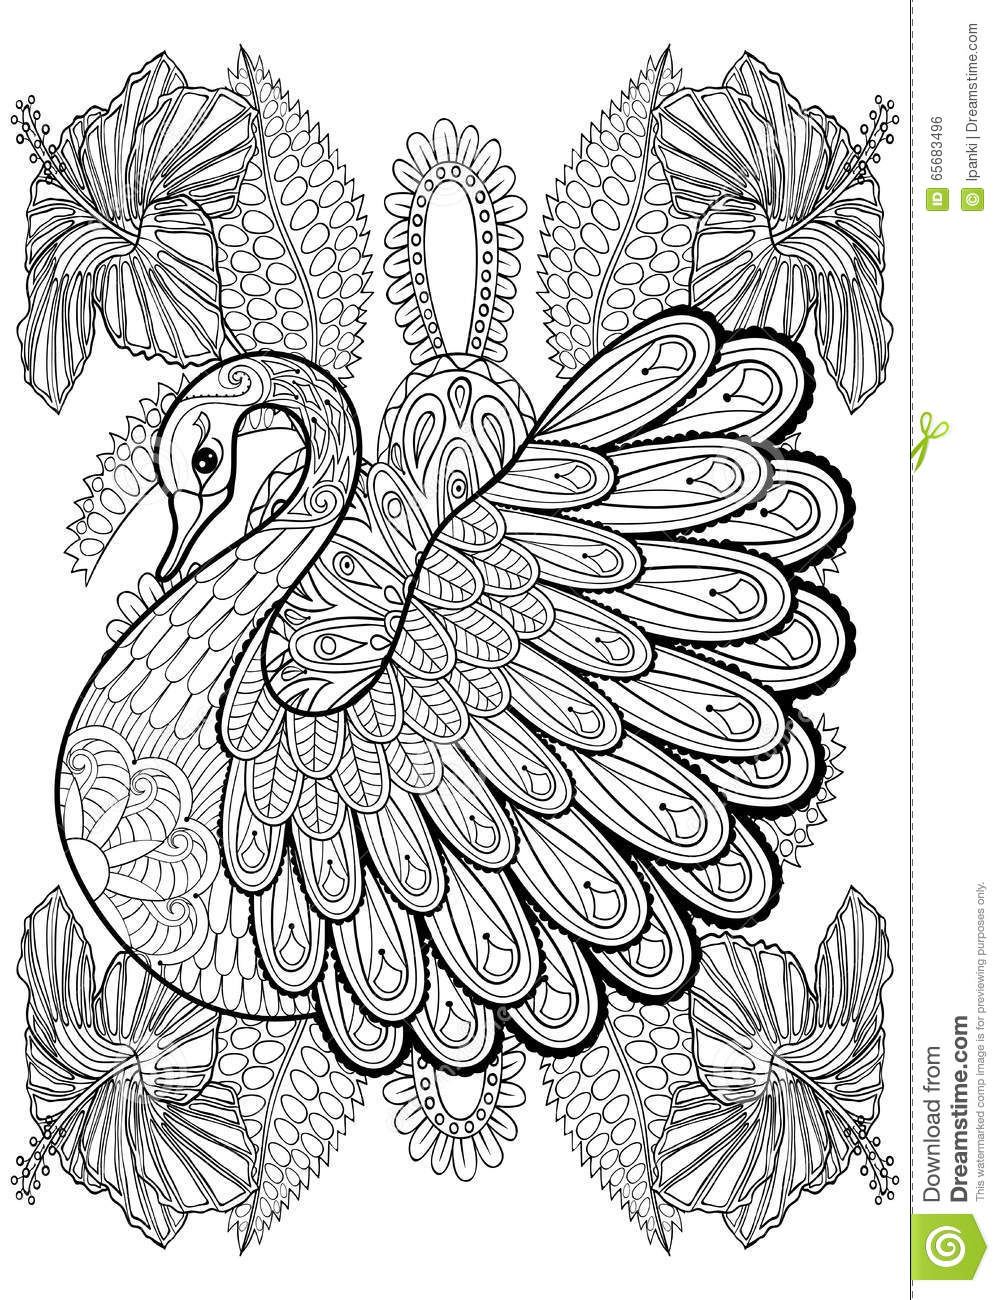 Hand Drawing Artistic Swan In Flowers For Adult Coloring Pages ...